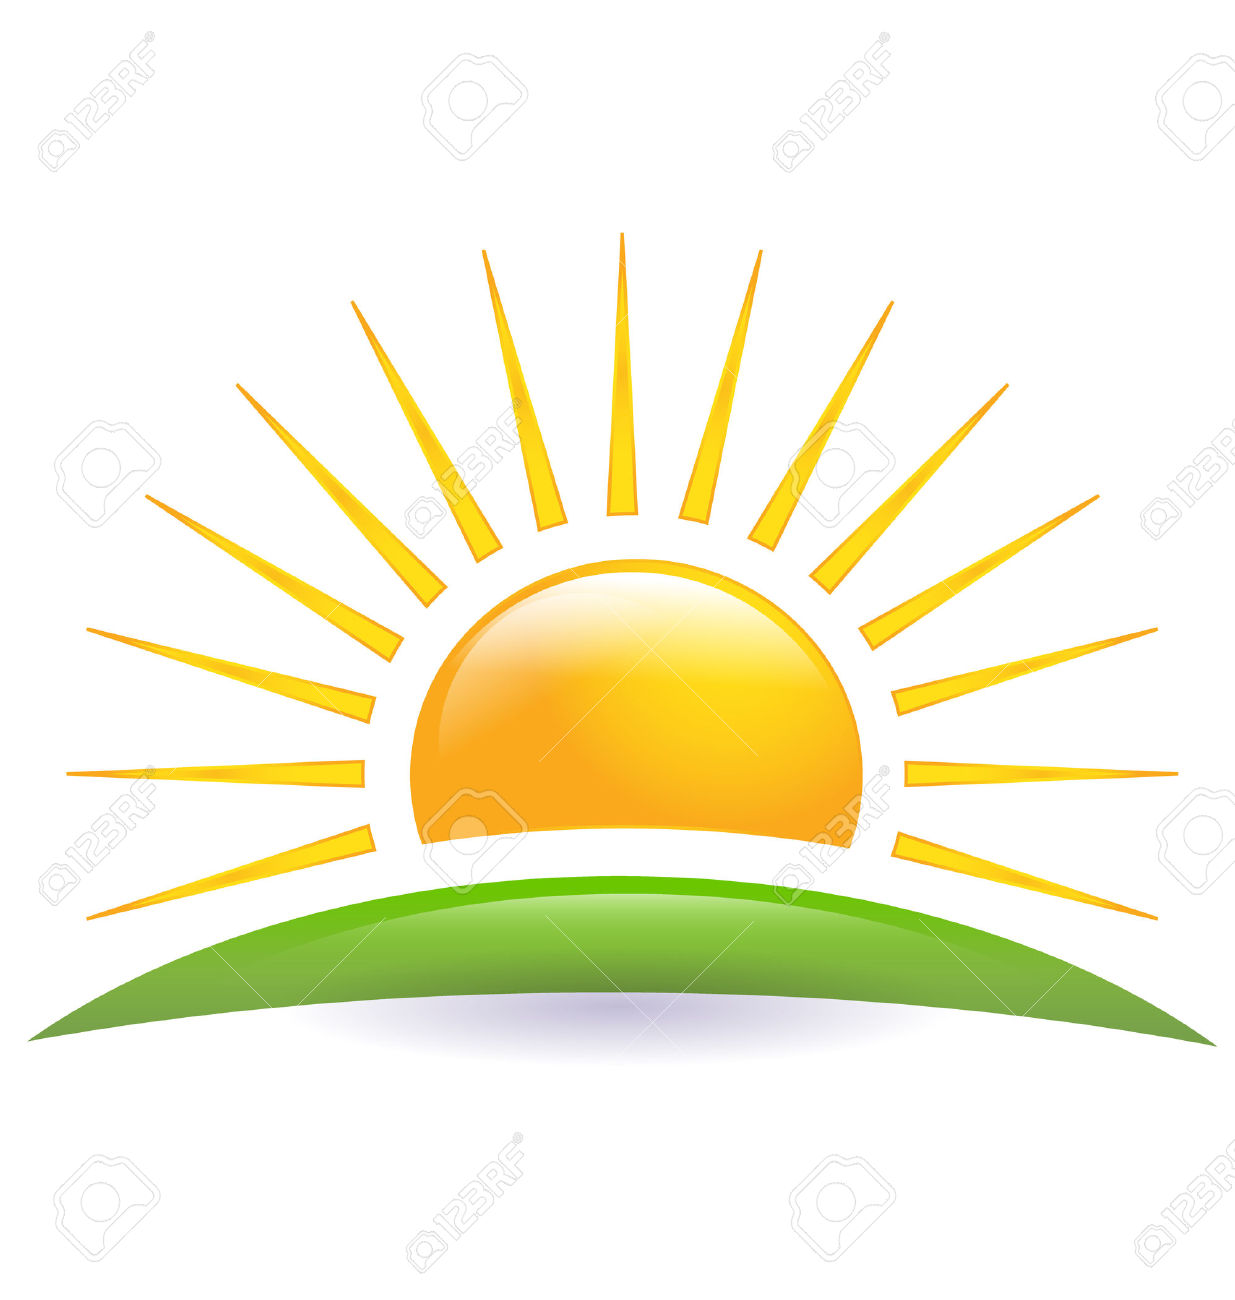 Le soleil clipart picture free Sun Isolated Cliparts, Stock Vector And Royalty Free Sun Isolated ... picture free